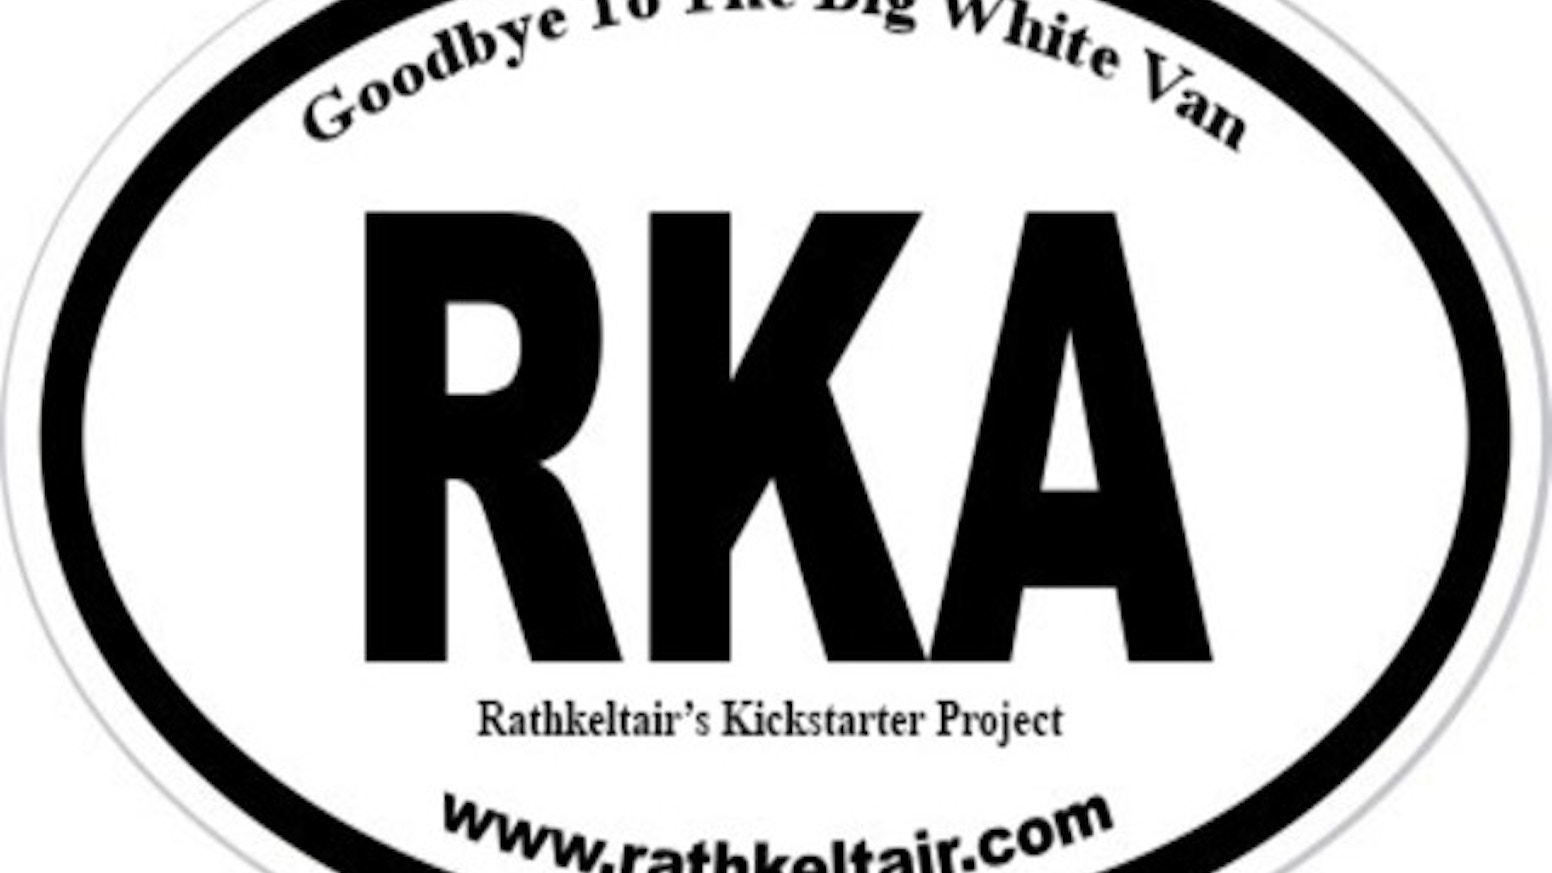 Rathkeltair's Goodbye to the Big White Van by Rathkeltair